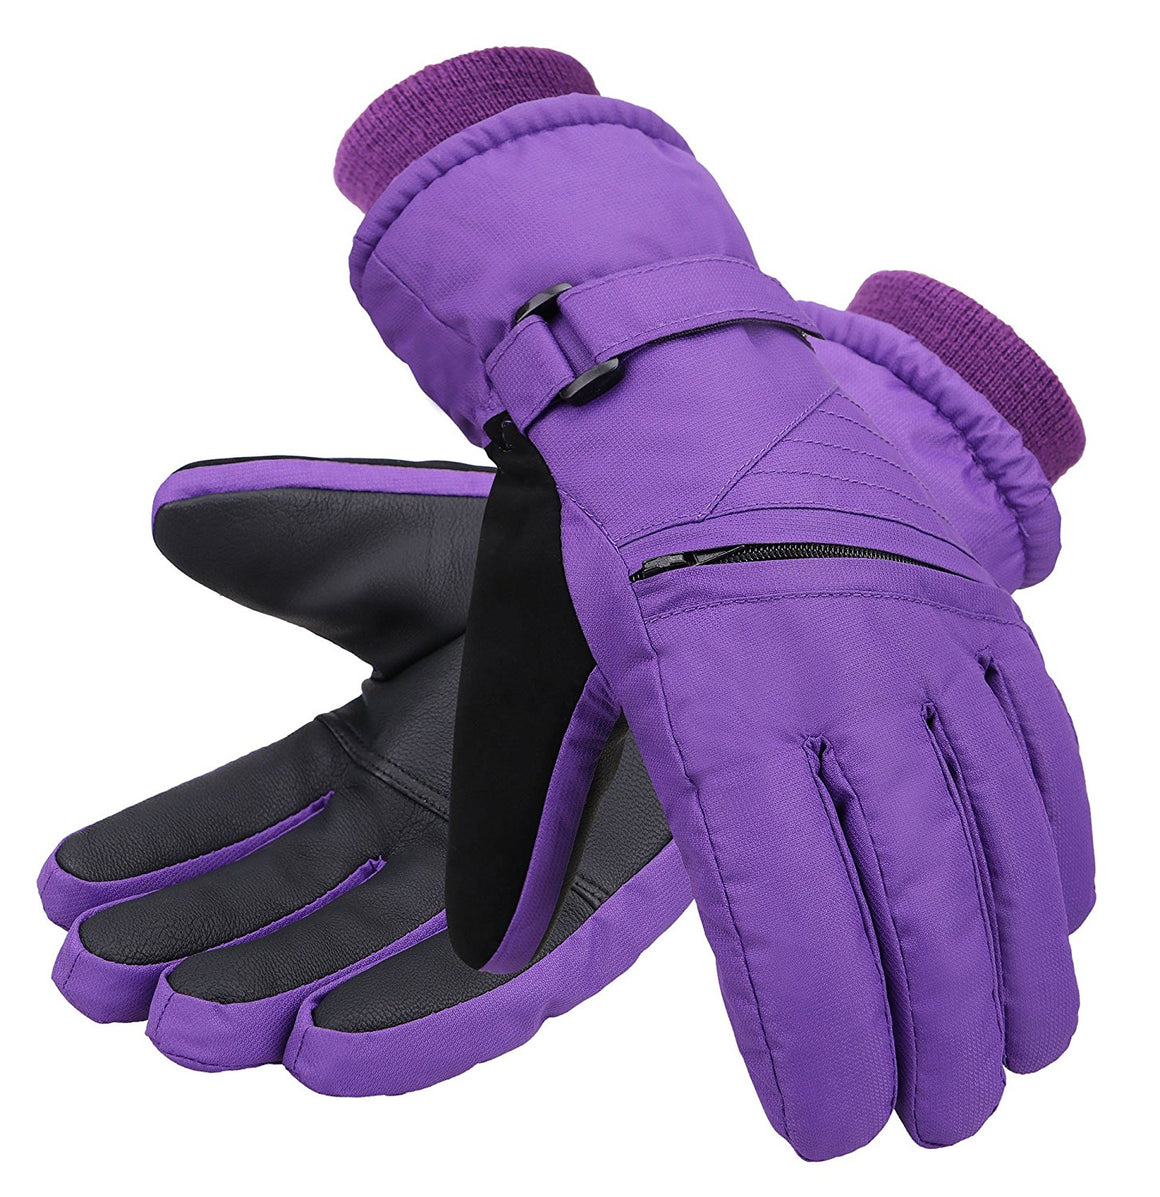 Andorra Kid?€?s Zippered Pocket Ski & Snowboarding Gloves - Purple